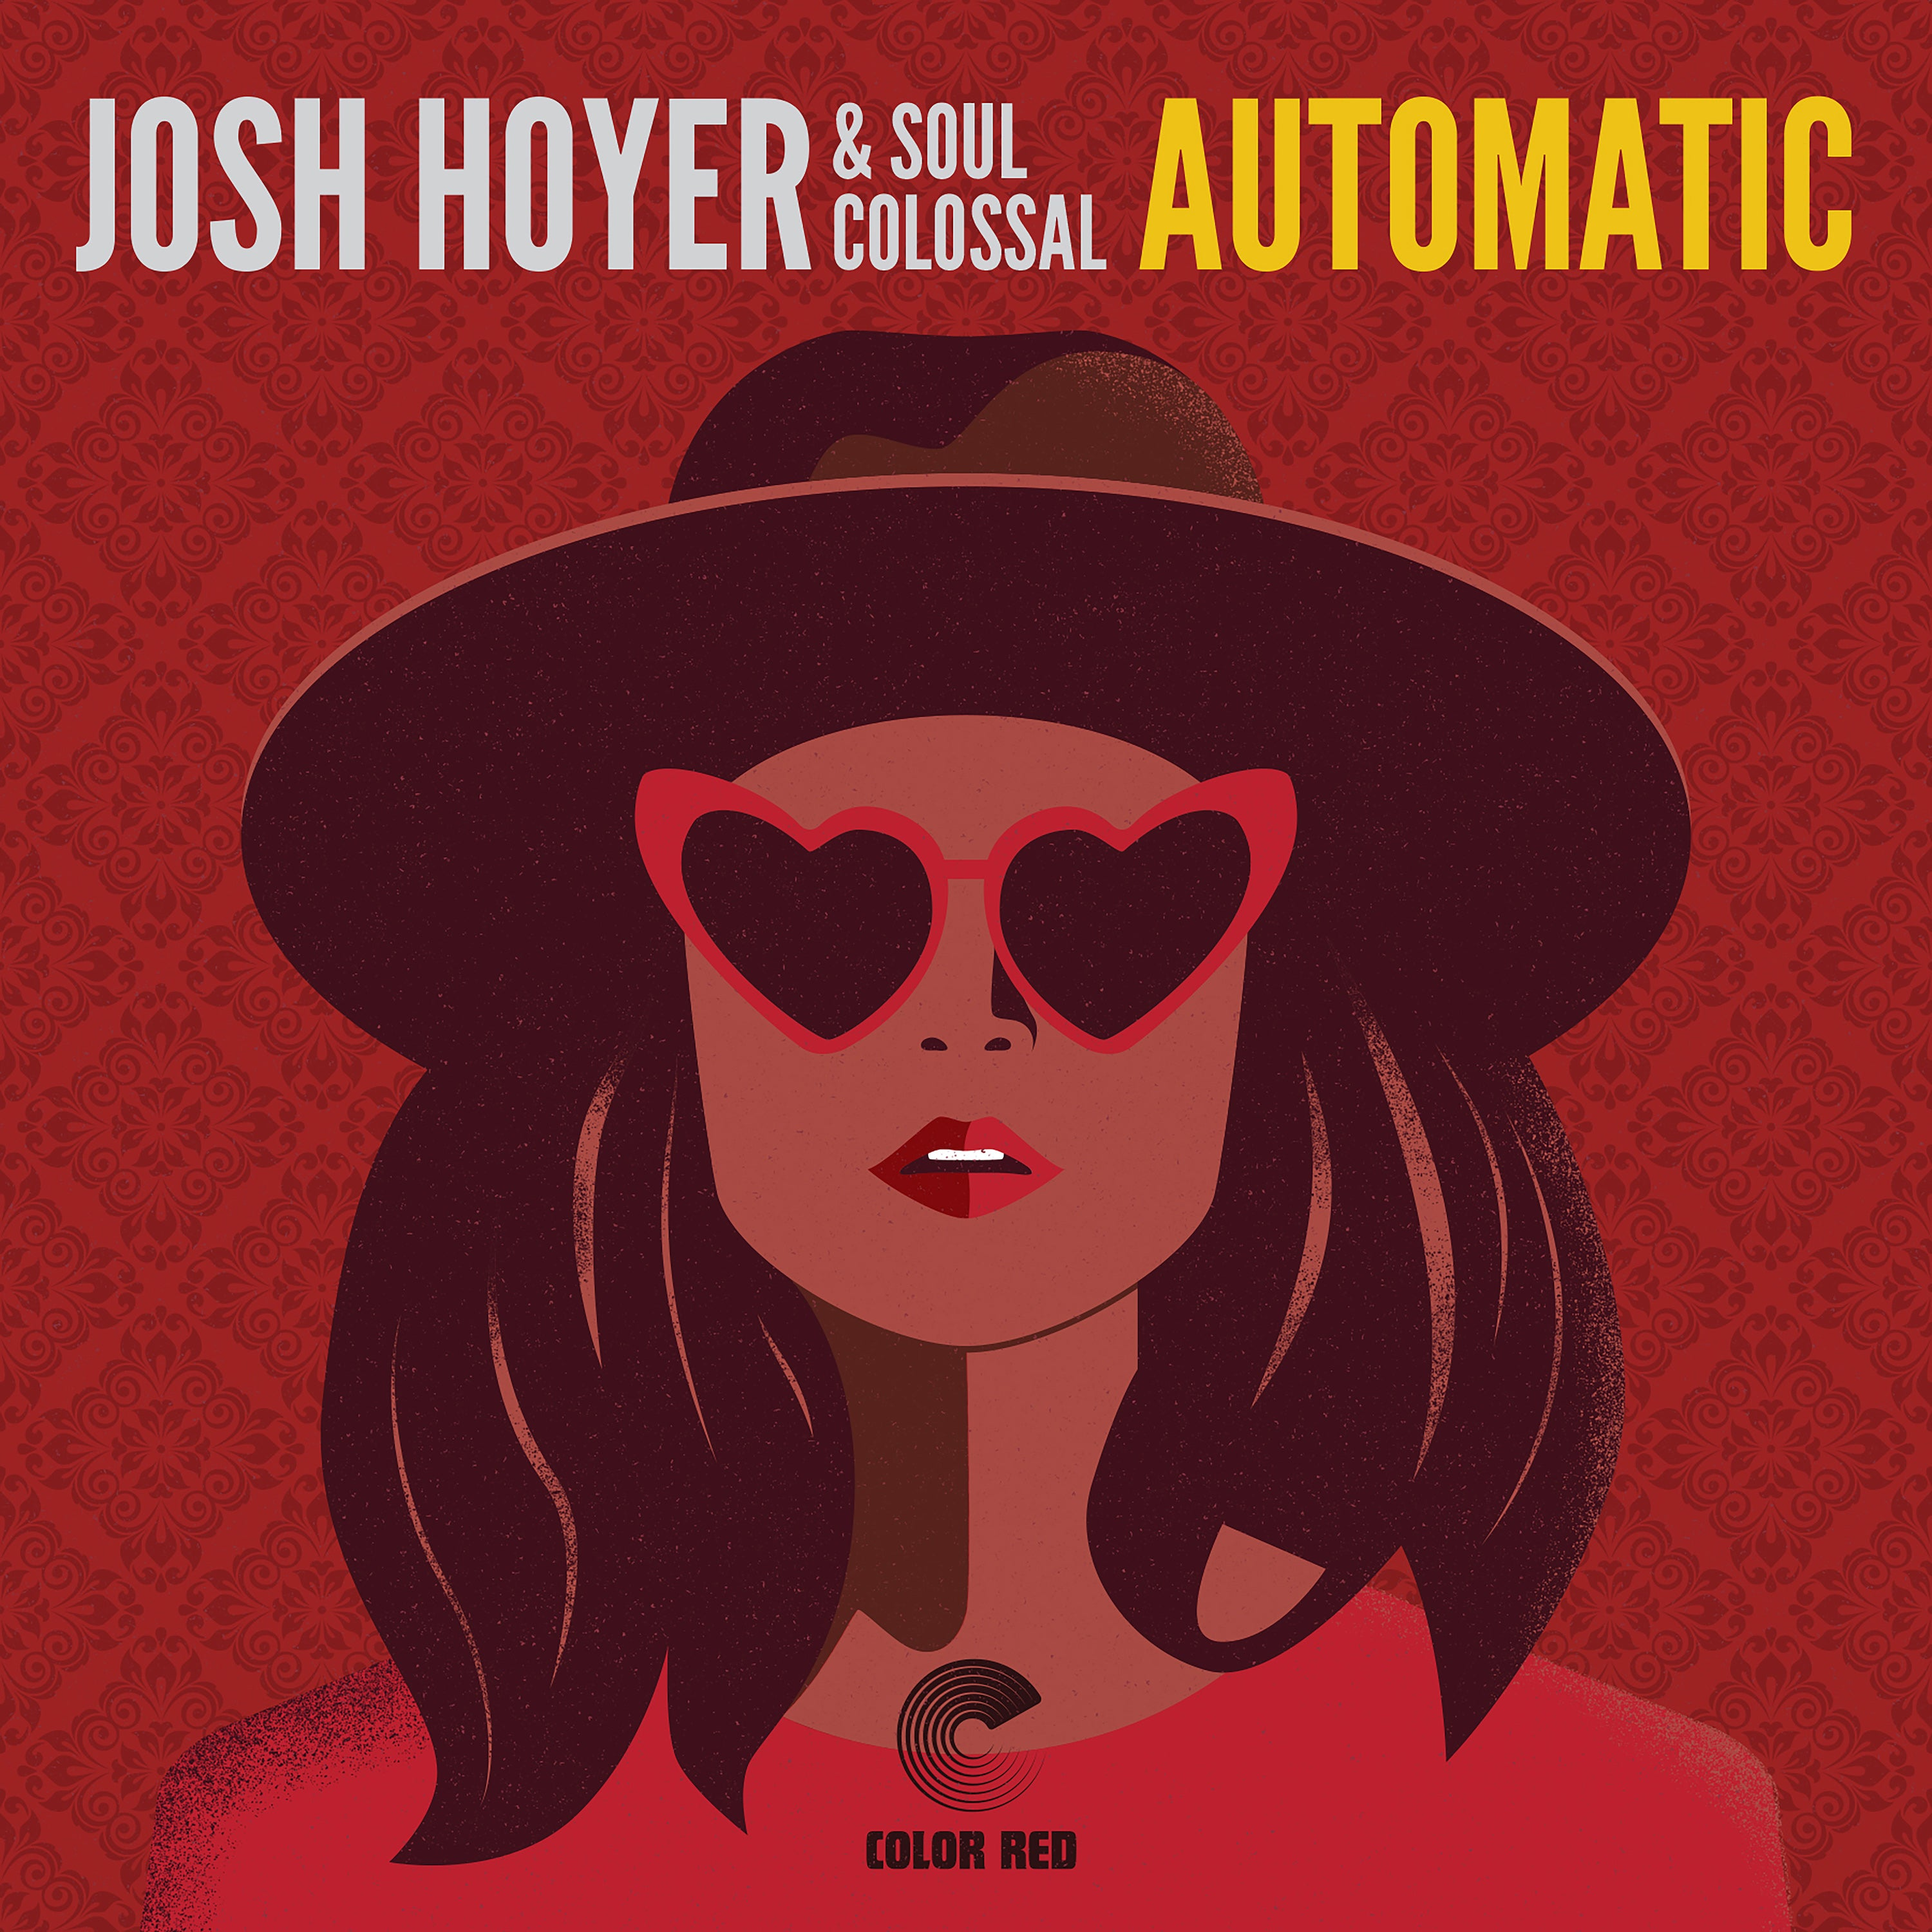 """Josh Hoyer & Soul Colossal - """"Automatic"""" 